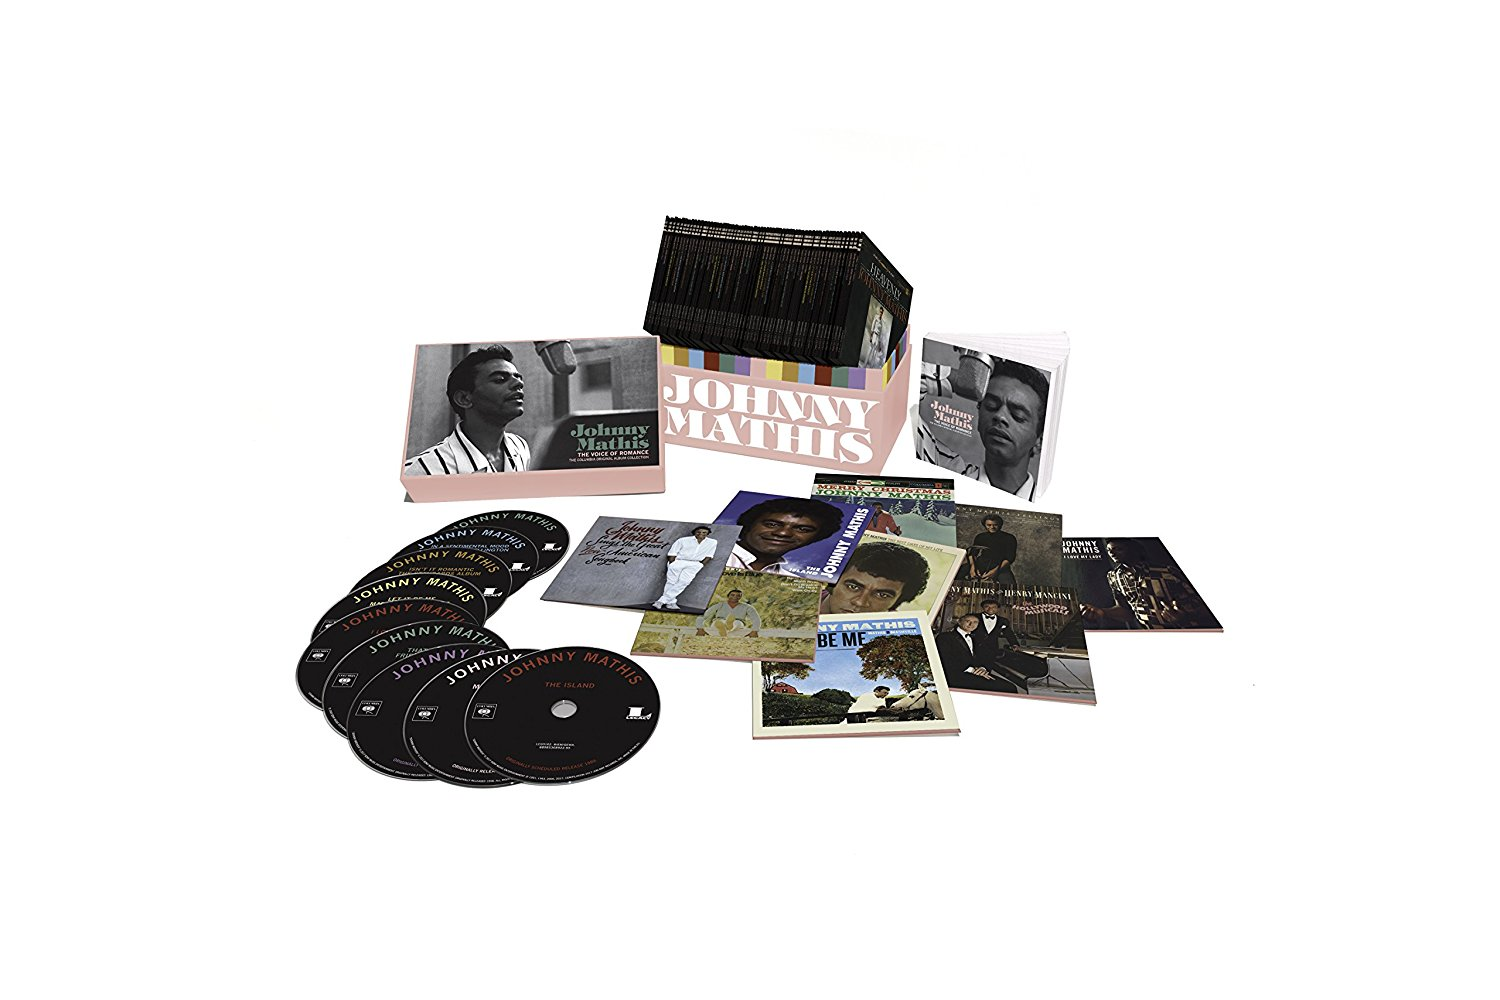 I listened to all 68 albums featured in the 2017 Johnny Mathis boxed set  The Voice of Romance:   The Columbia Original Album Collection  (Sony/Legacy).